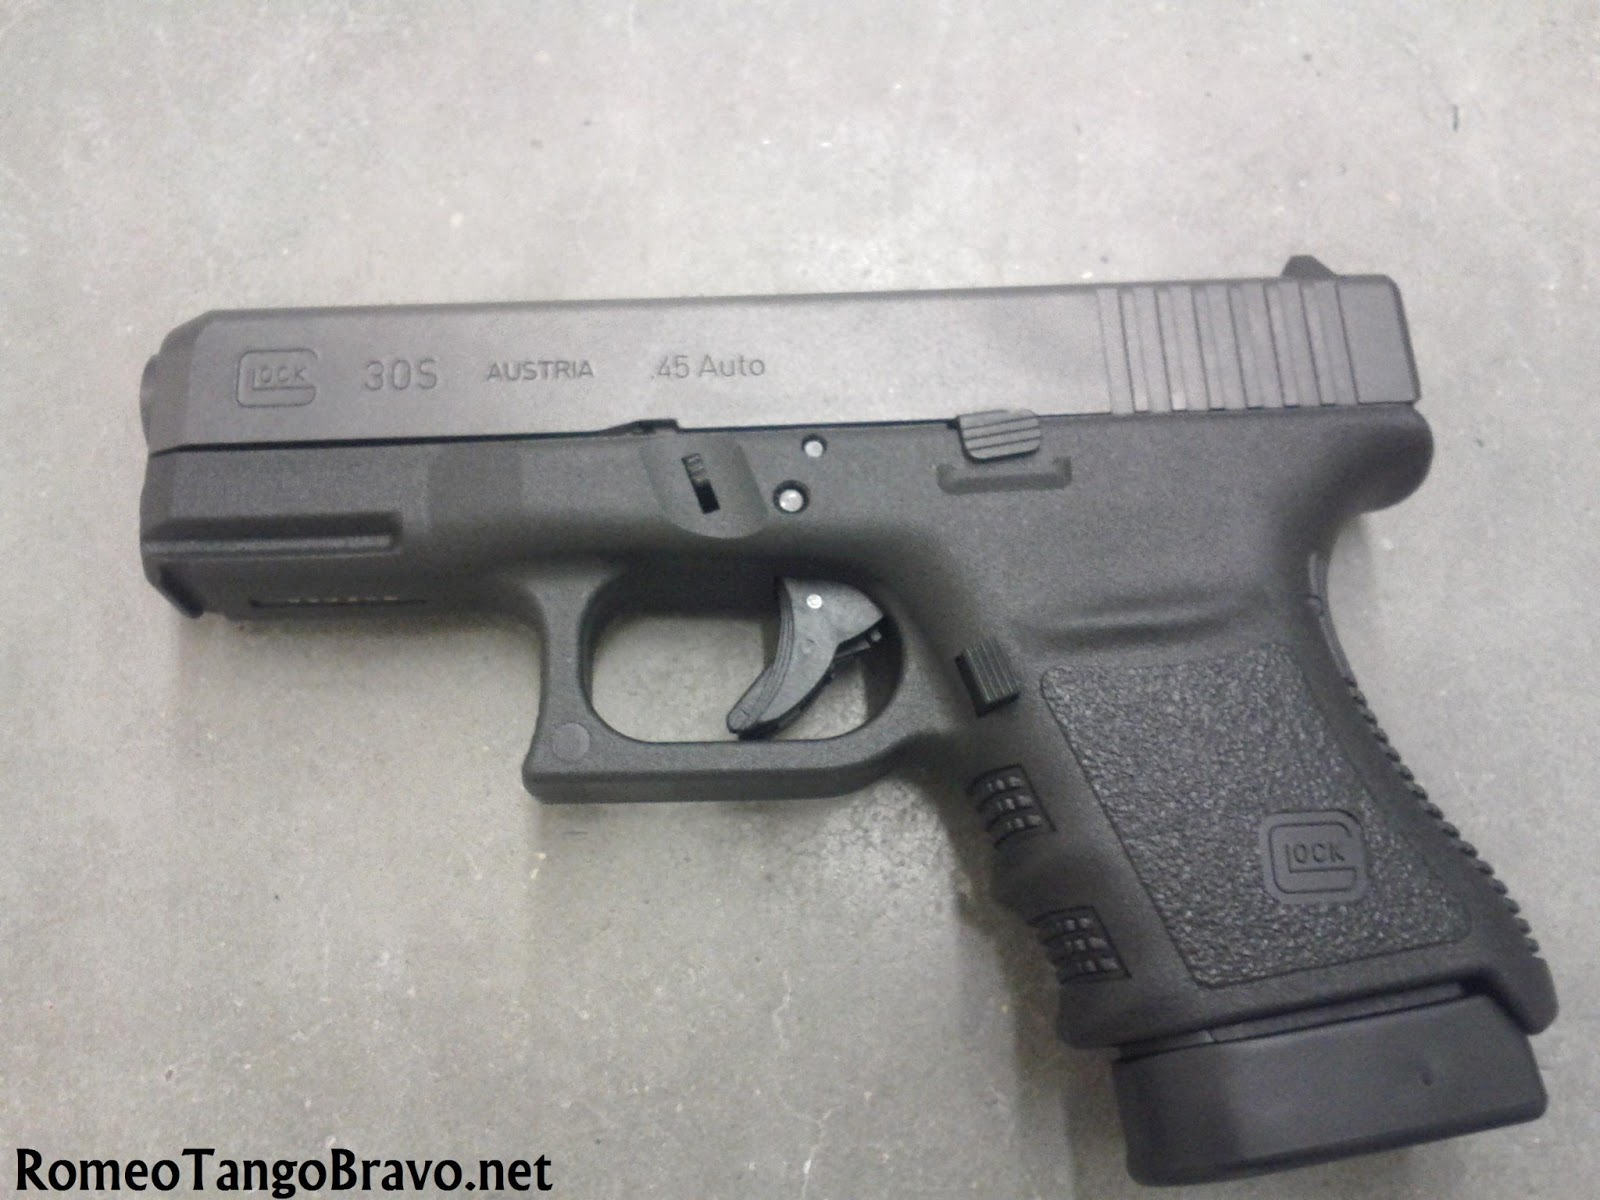 Glock 30s Vs Glock 30 Pictures to Pin on Pinterest - PinsDaddy